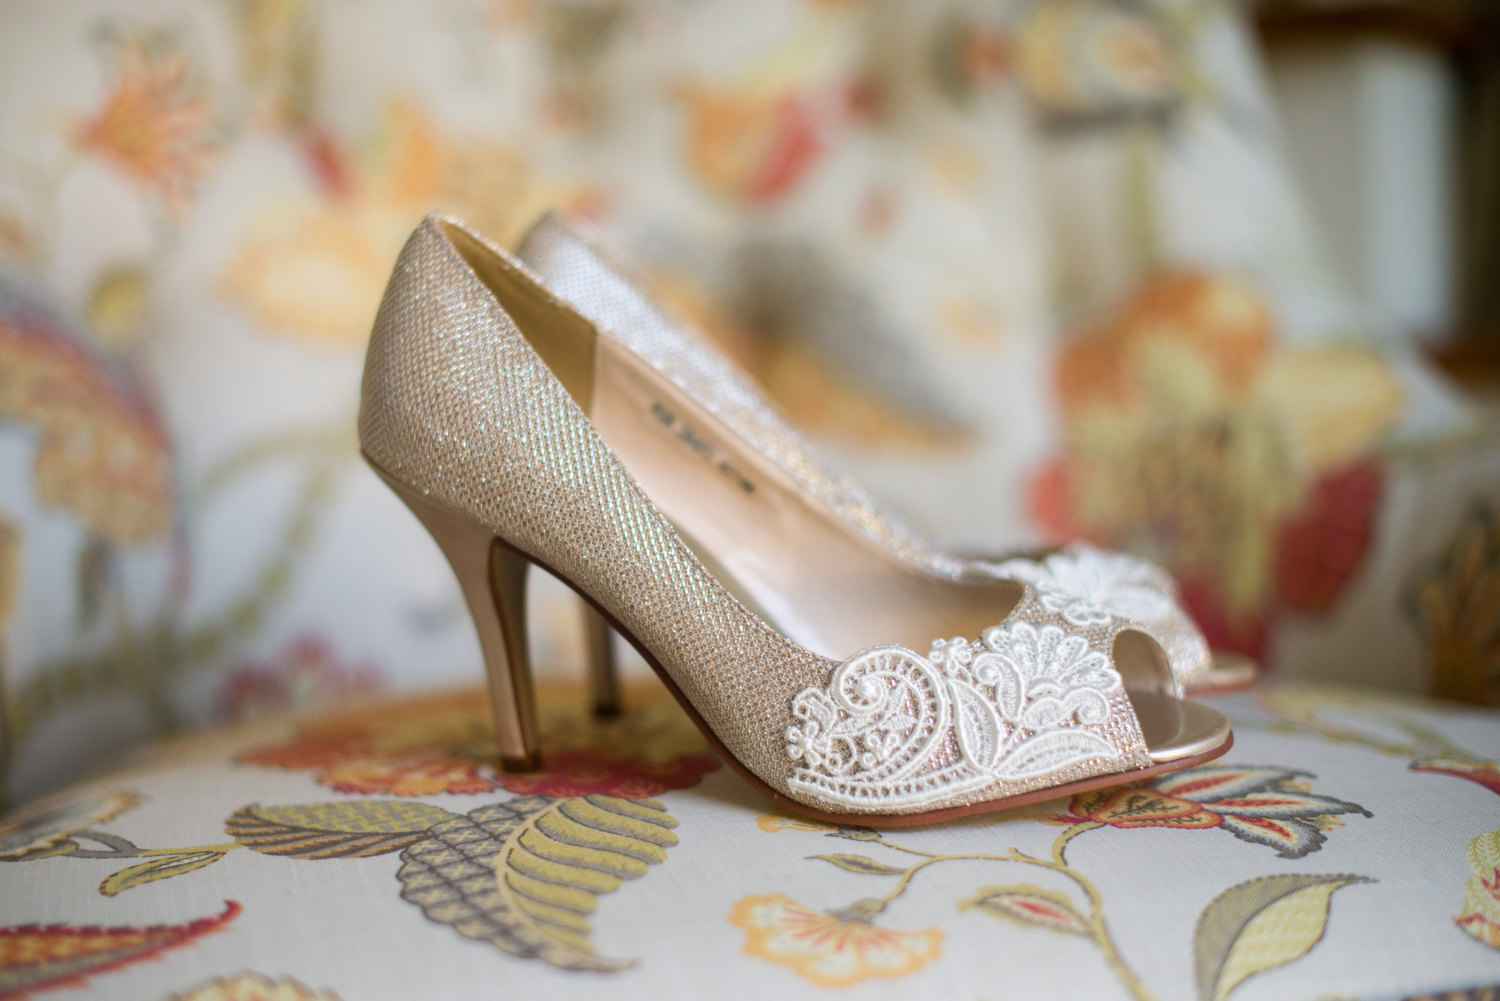 gold champagne silver wedding heels with lace - 9 Romantically Vintage Wedding Accessory Ideas